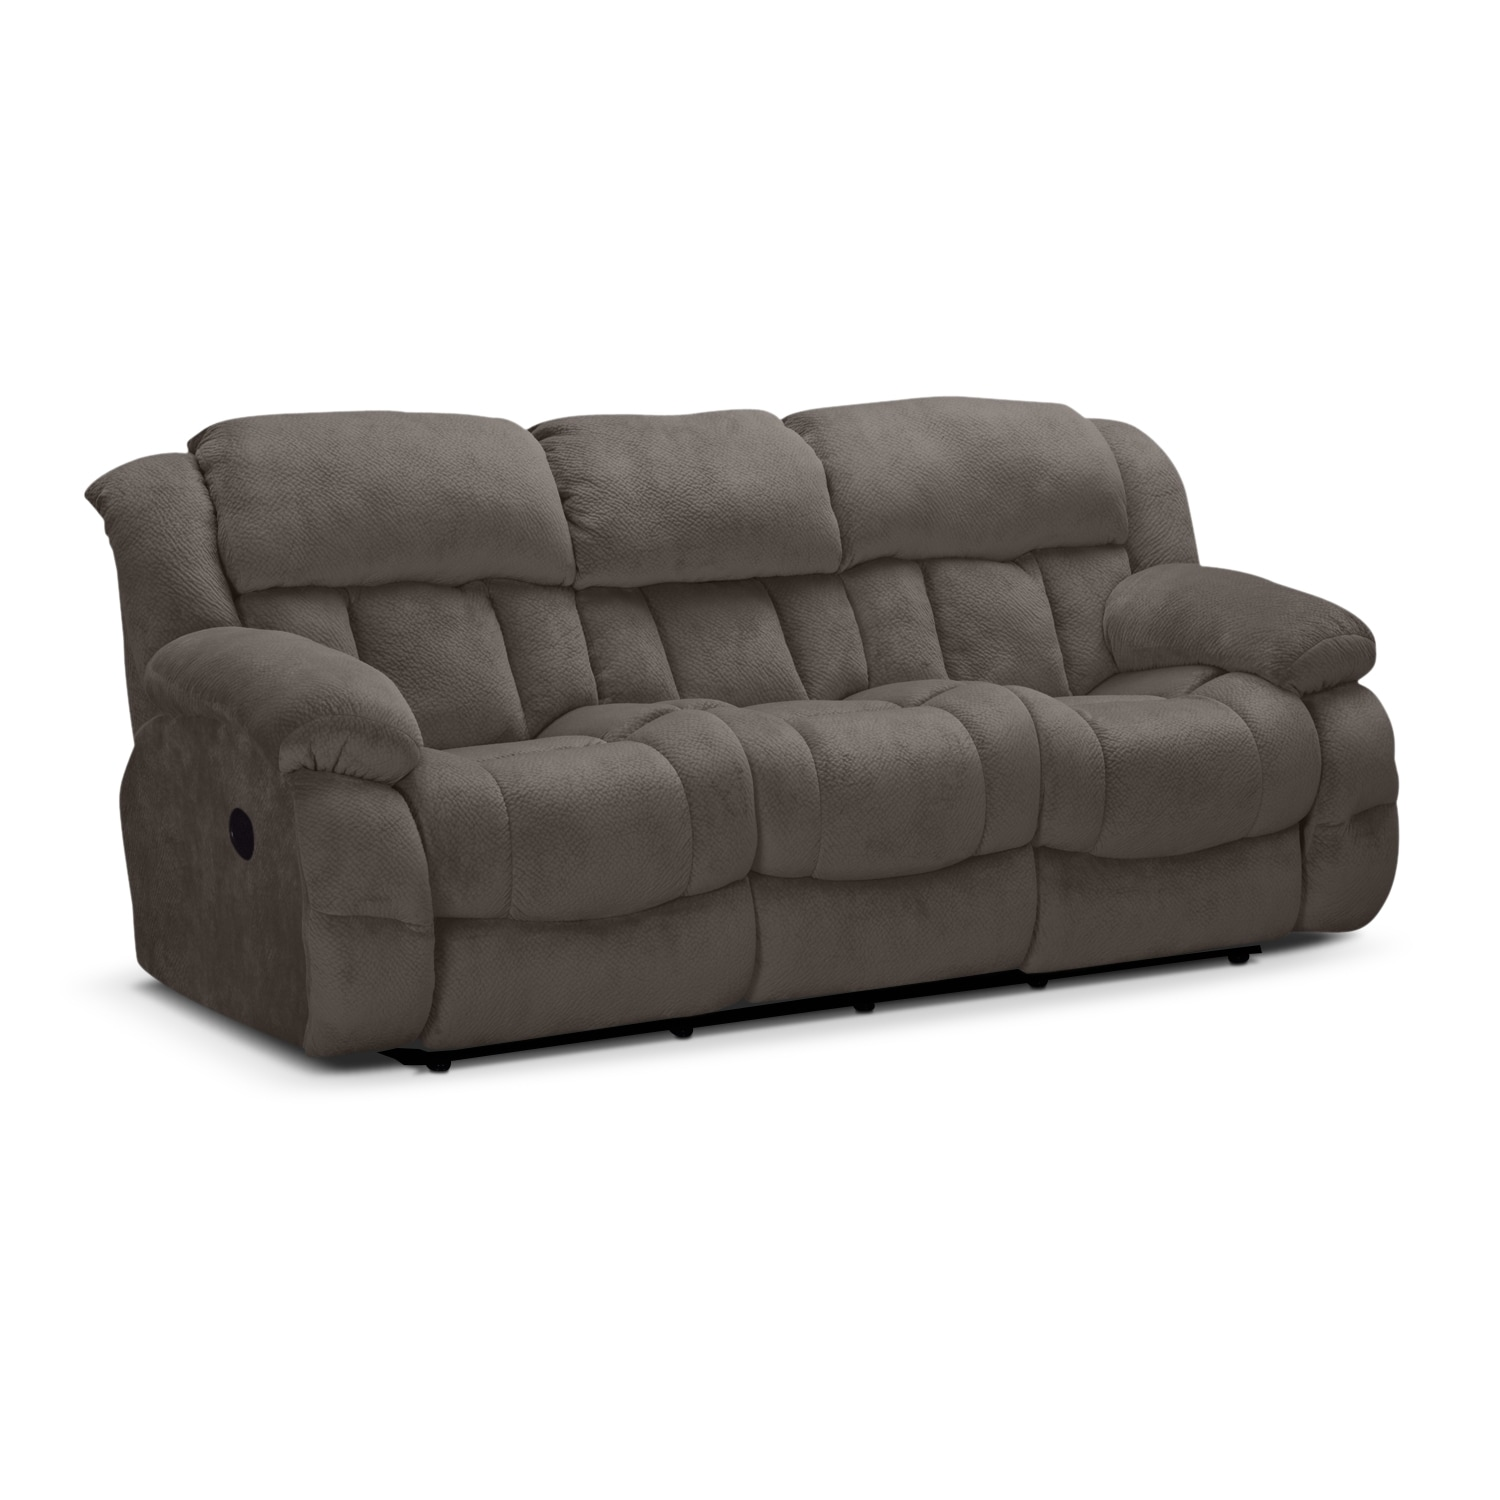 sofa cushion replacement houston friheten corner bed with storage bomstad black glider ow lee cushions